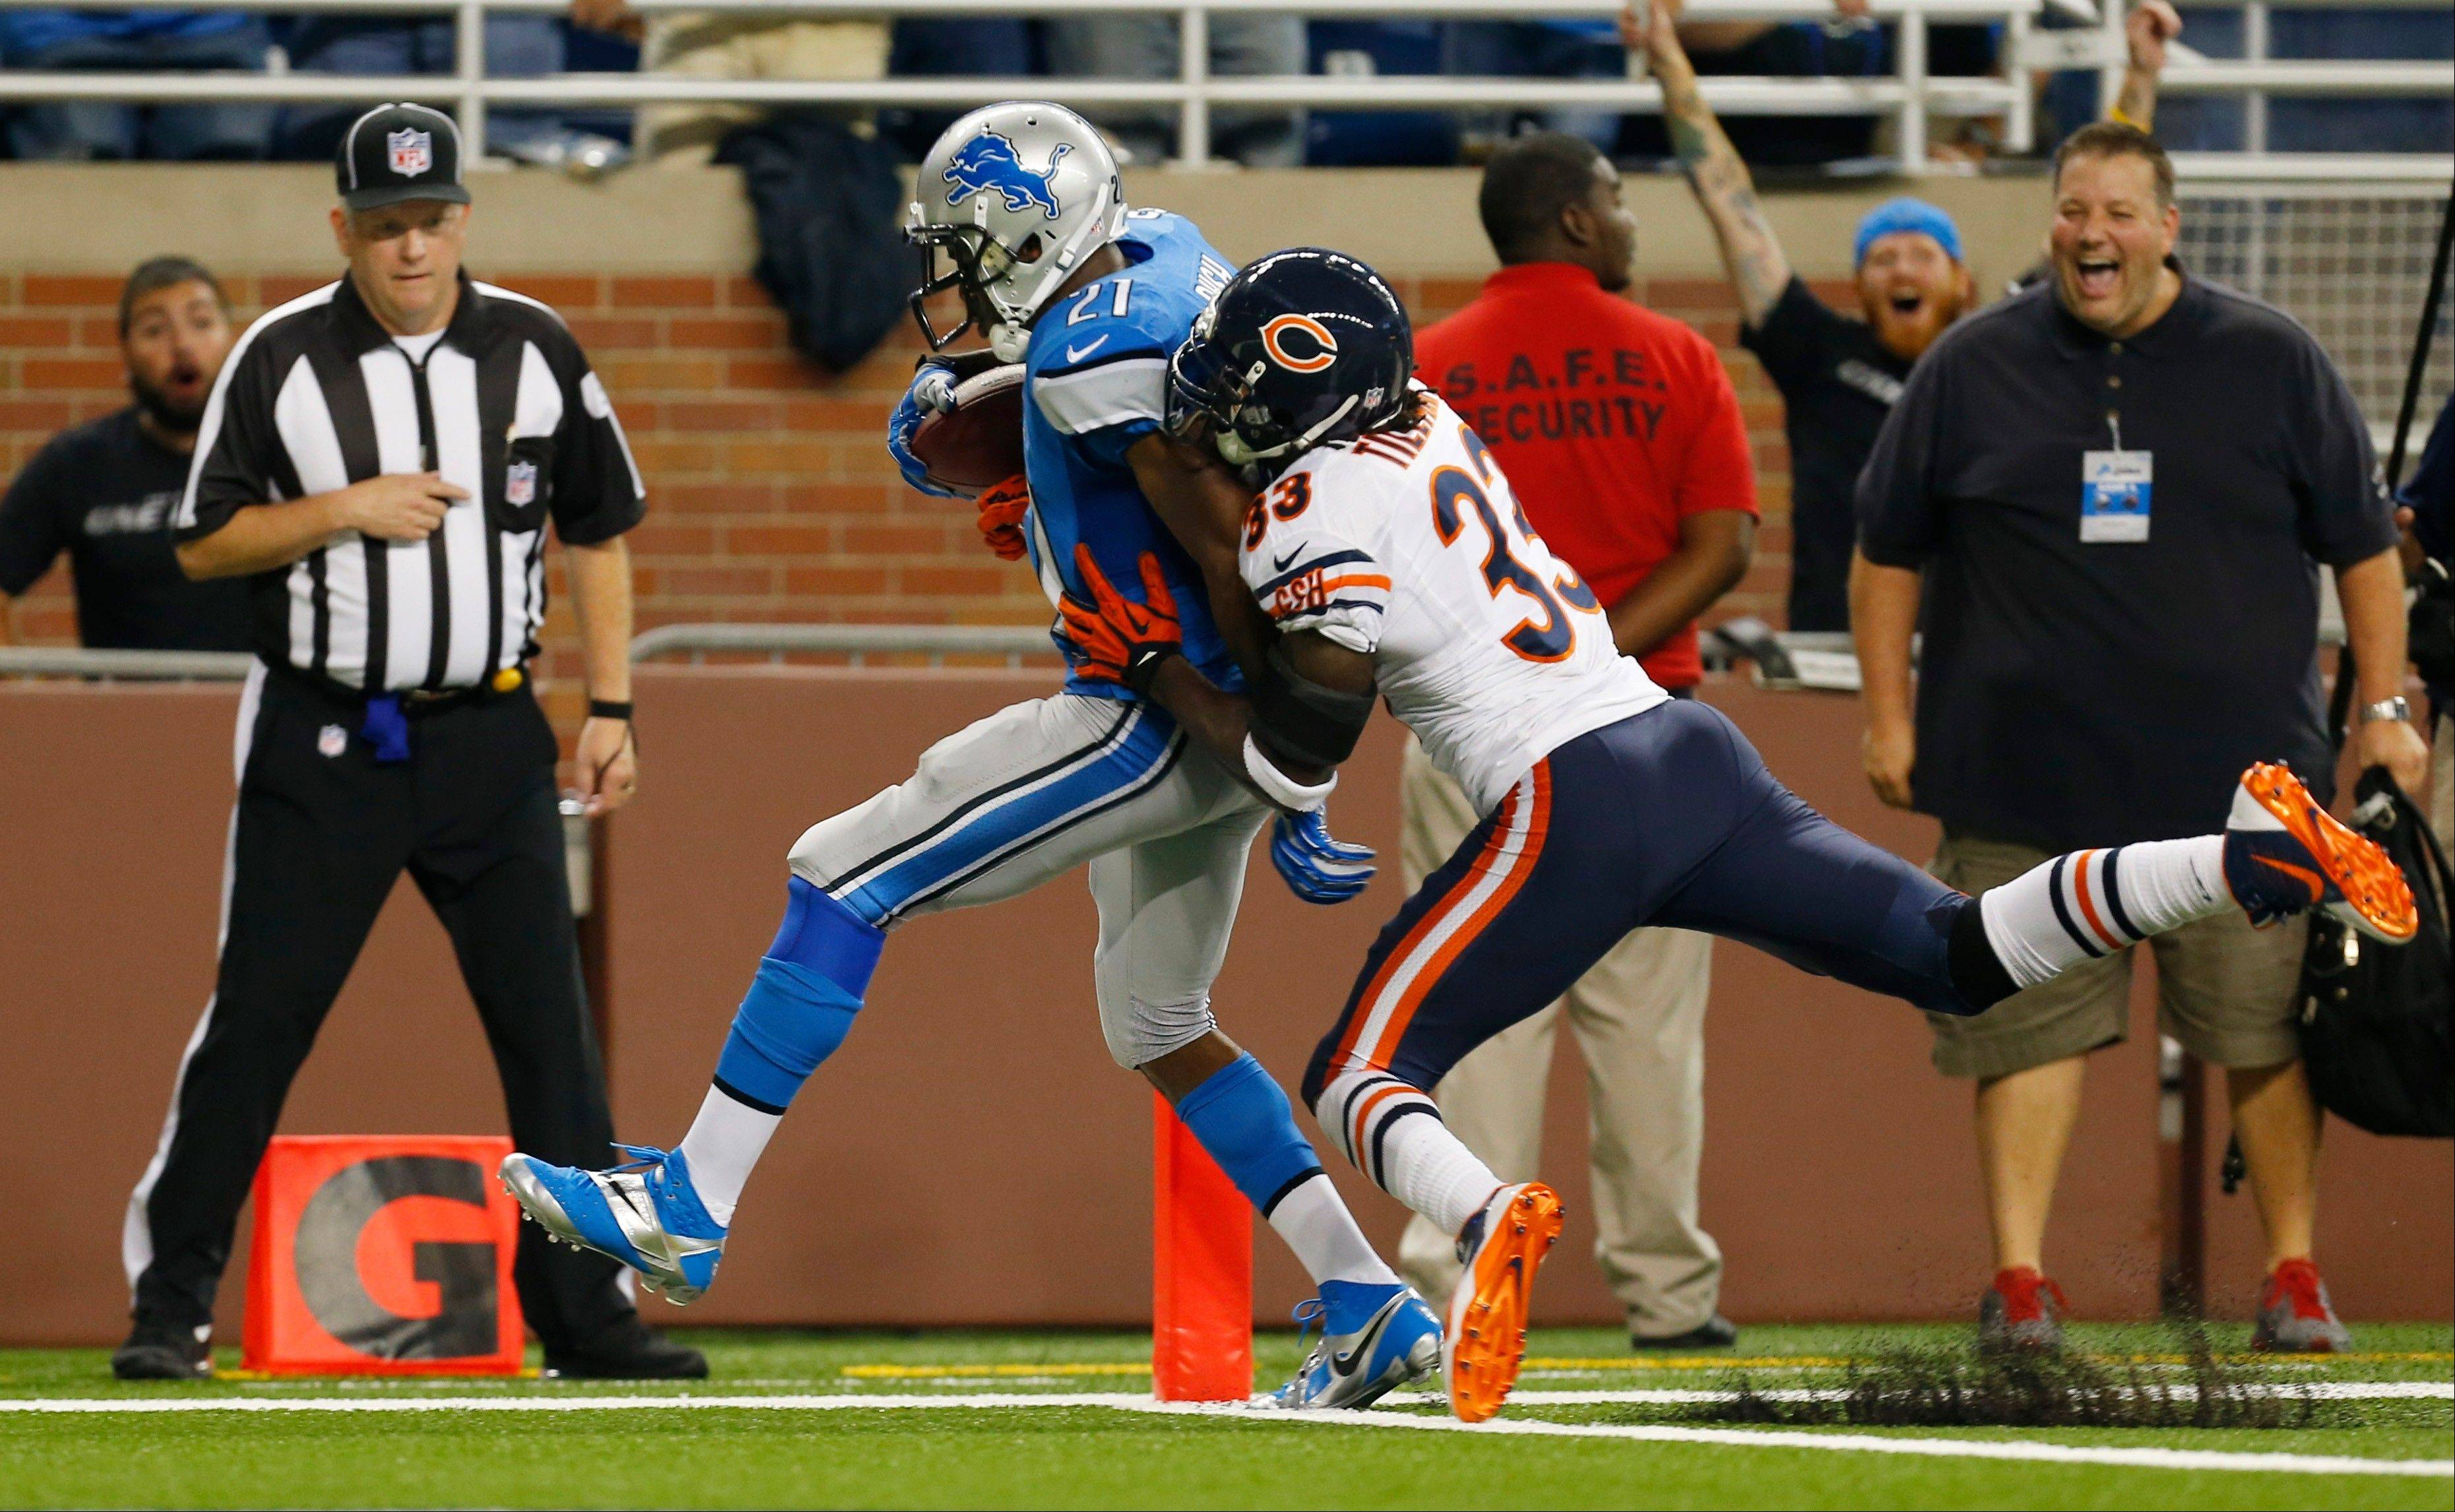 Detroit Lions running back Reggie Bush (21), defended by Chicago Bears cornerback Charles Tillman (33) scores on a 37-yard touchdown run during the second quarter.